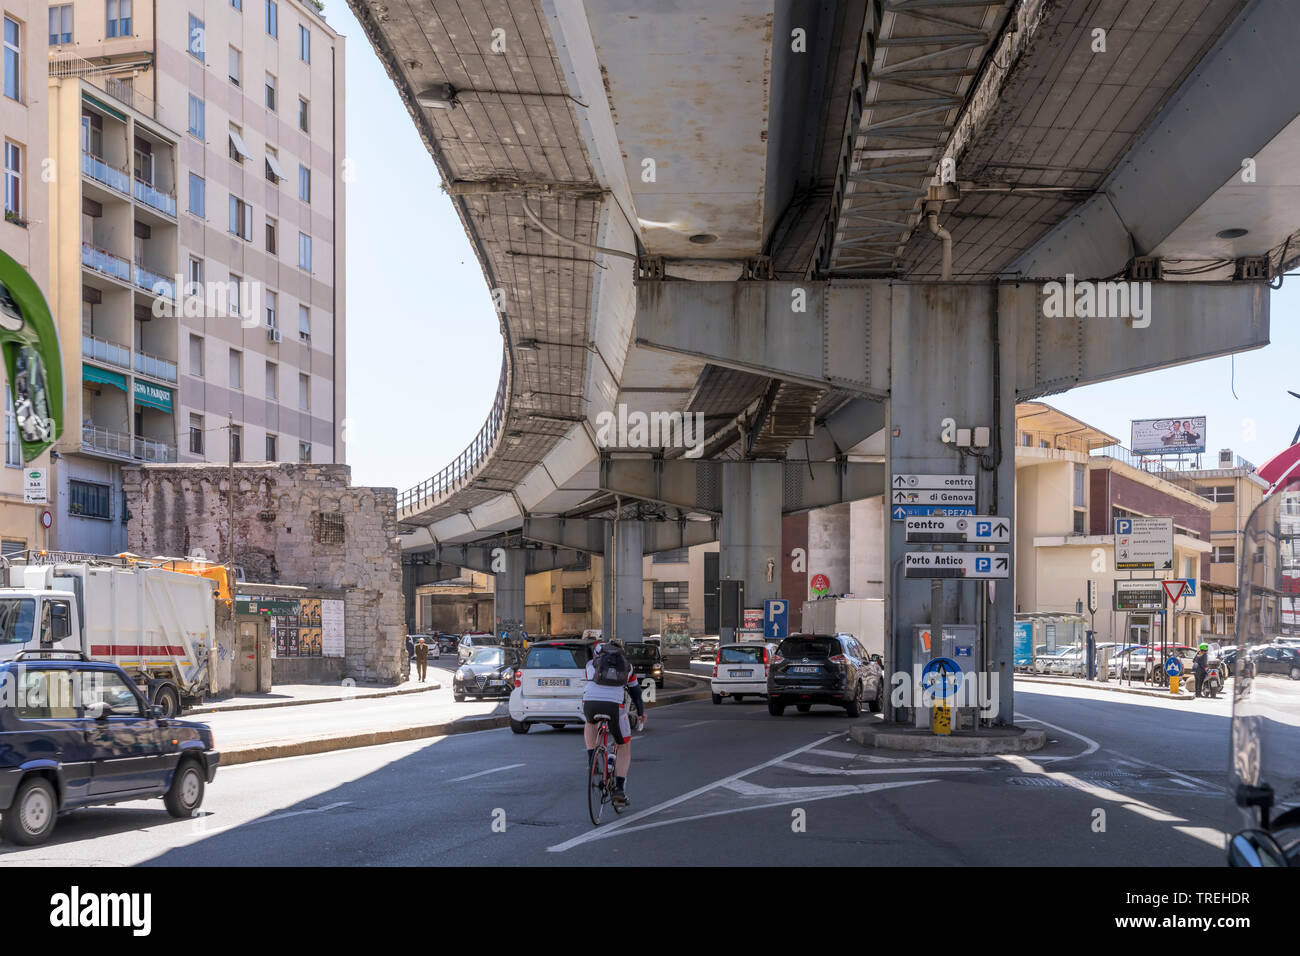 GENOVA, ITALY - MAY 16: traffic flows under 60's skyway passing by urban renewal area of sea town historical harbor. Shot on a sunny spring day on may - Stock Image